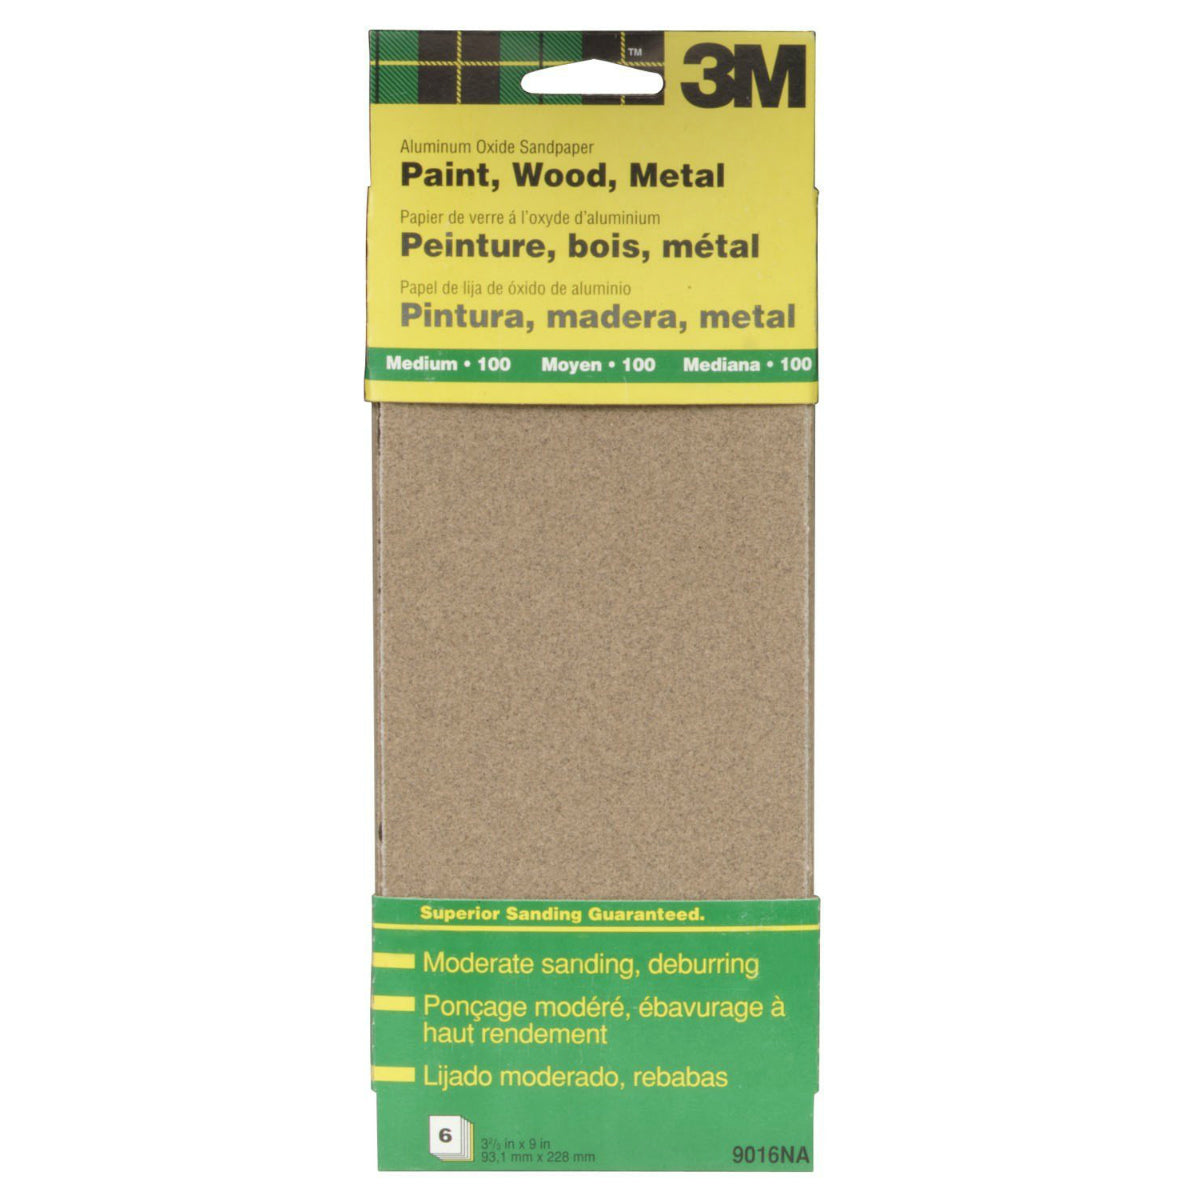 "3M 9016 Aluminum Oxide Sandpaper Sheet, 3-2/3"" x 9"", Medium 100 Grit, 6-Pack"